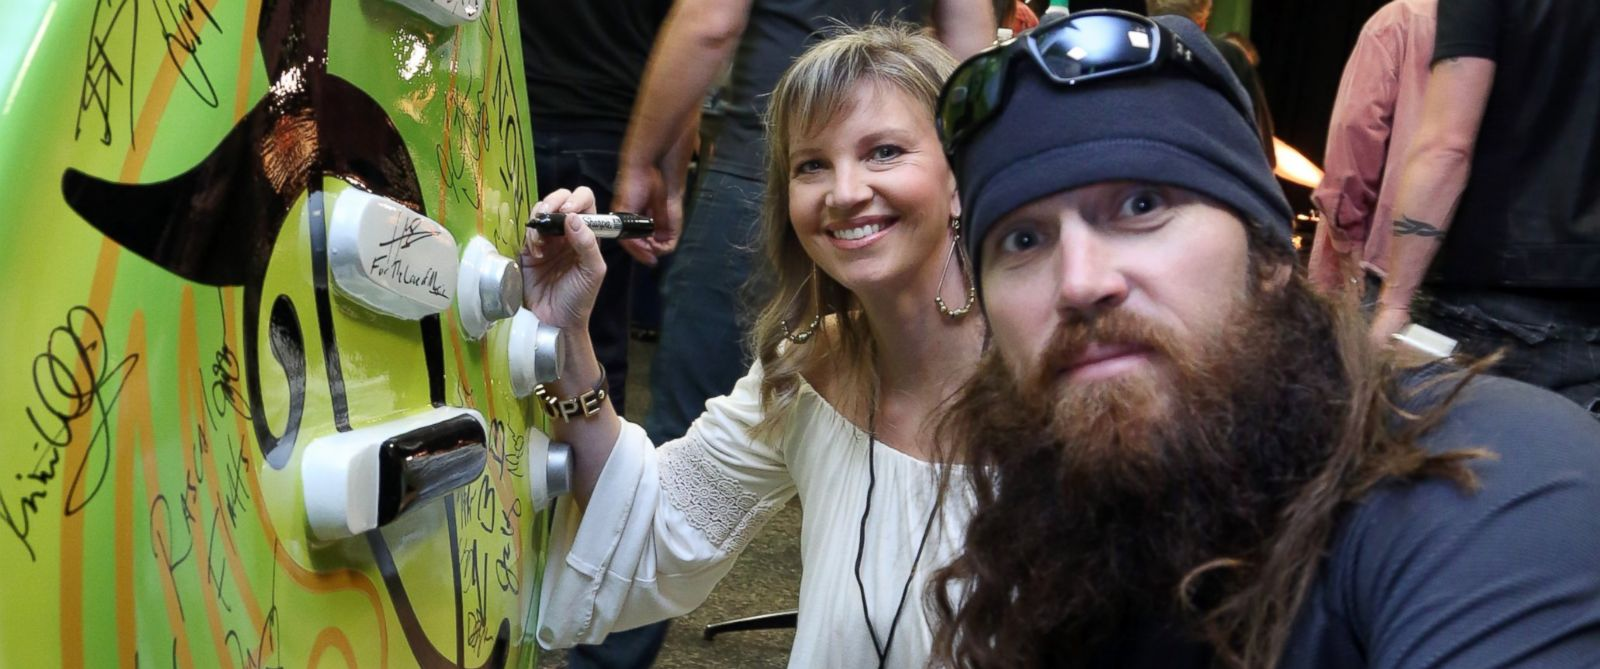 PHOTO: Missy Robertson, left, and Jase Robertson, right, are pictured on Nov. 3, 2013 in Nashville, Tenn.